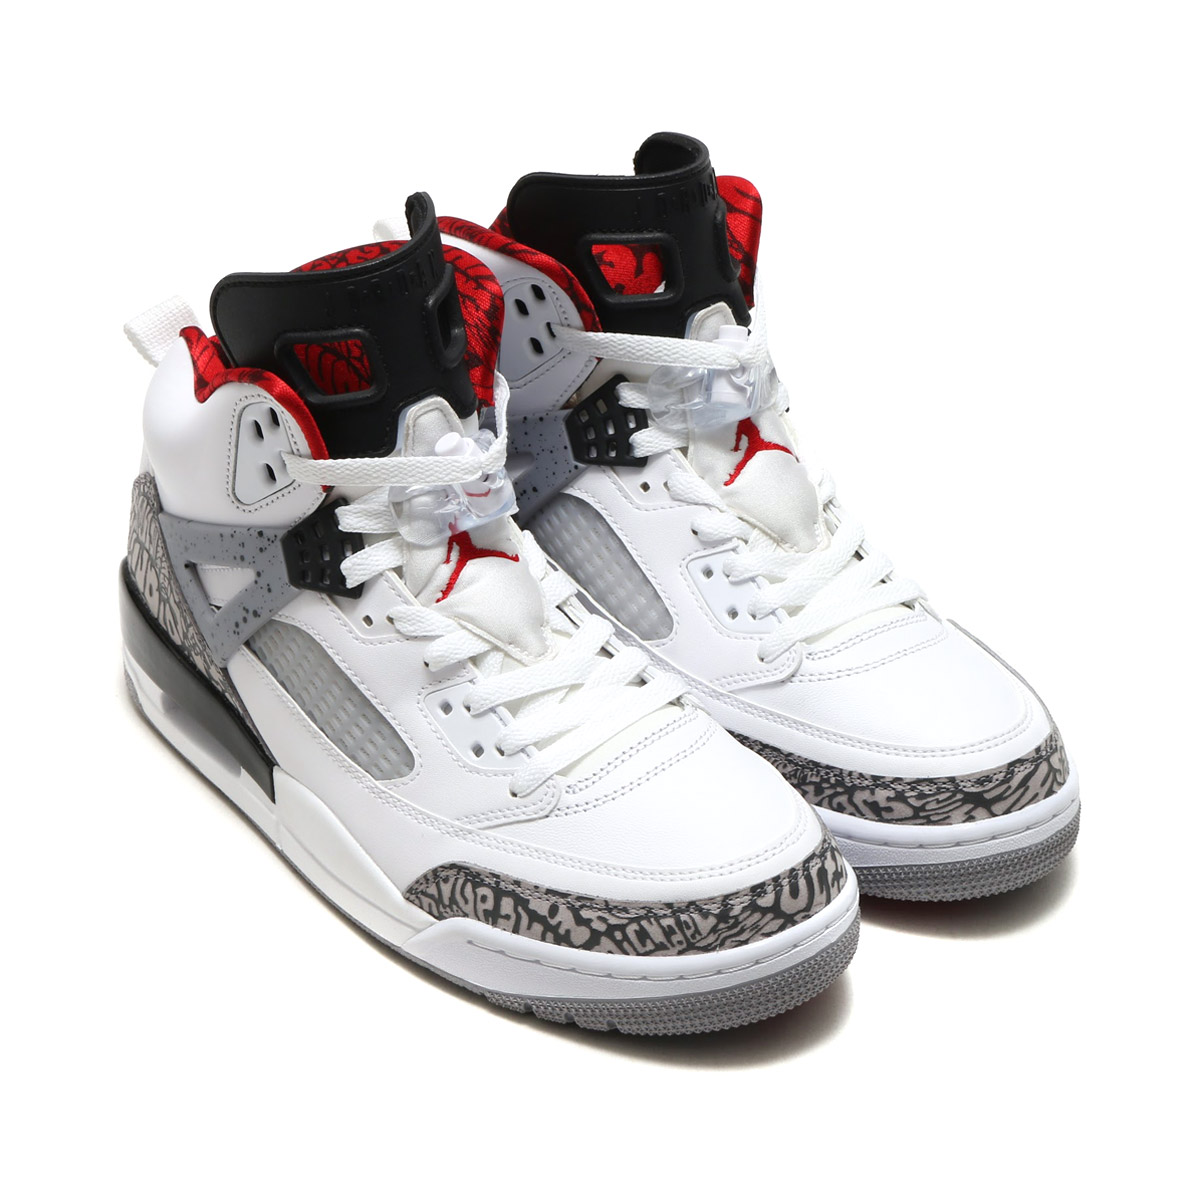 3a188eaf32e6c1 The moment when Jordan spy Zeke obtained an idea to four legendary Air  Jordan (three or four